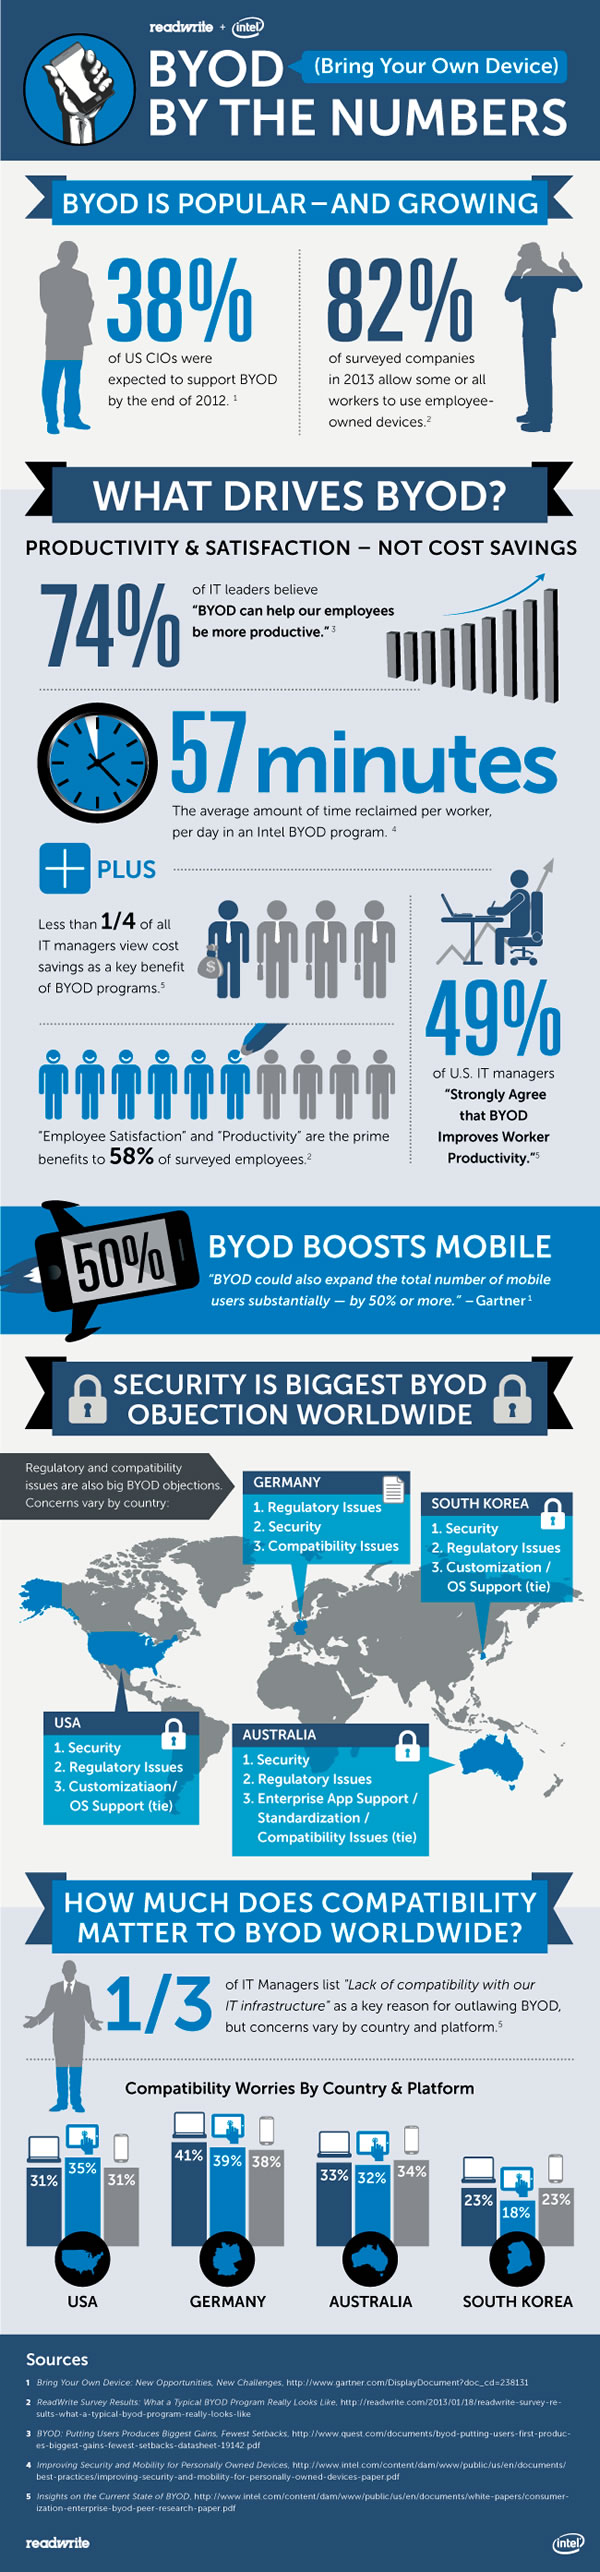 byod by the numbers